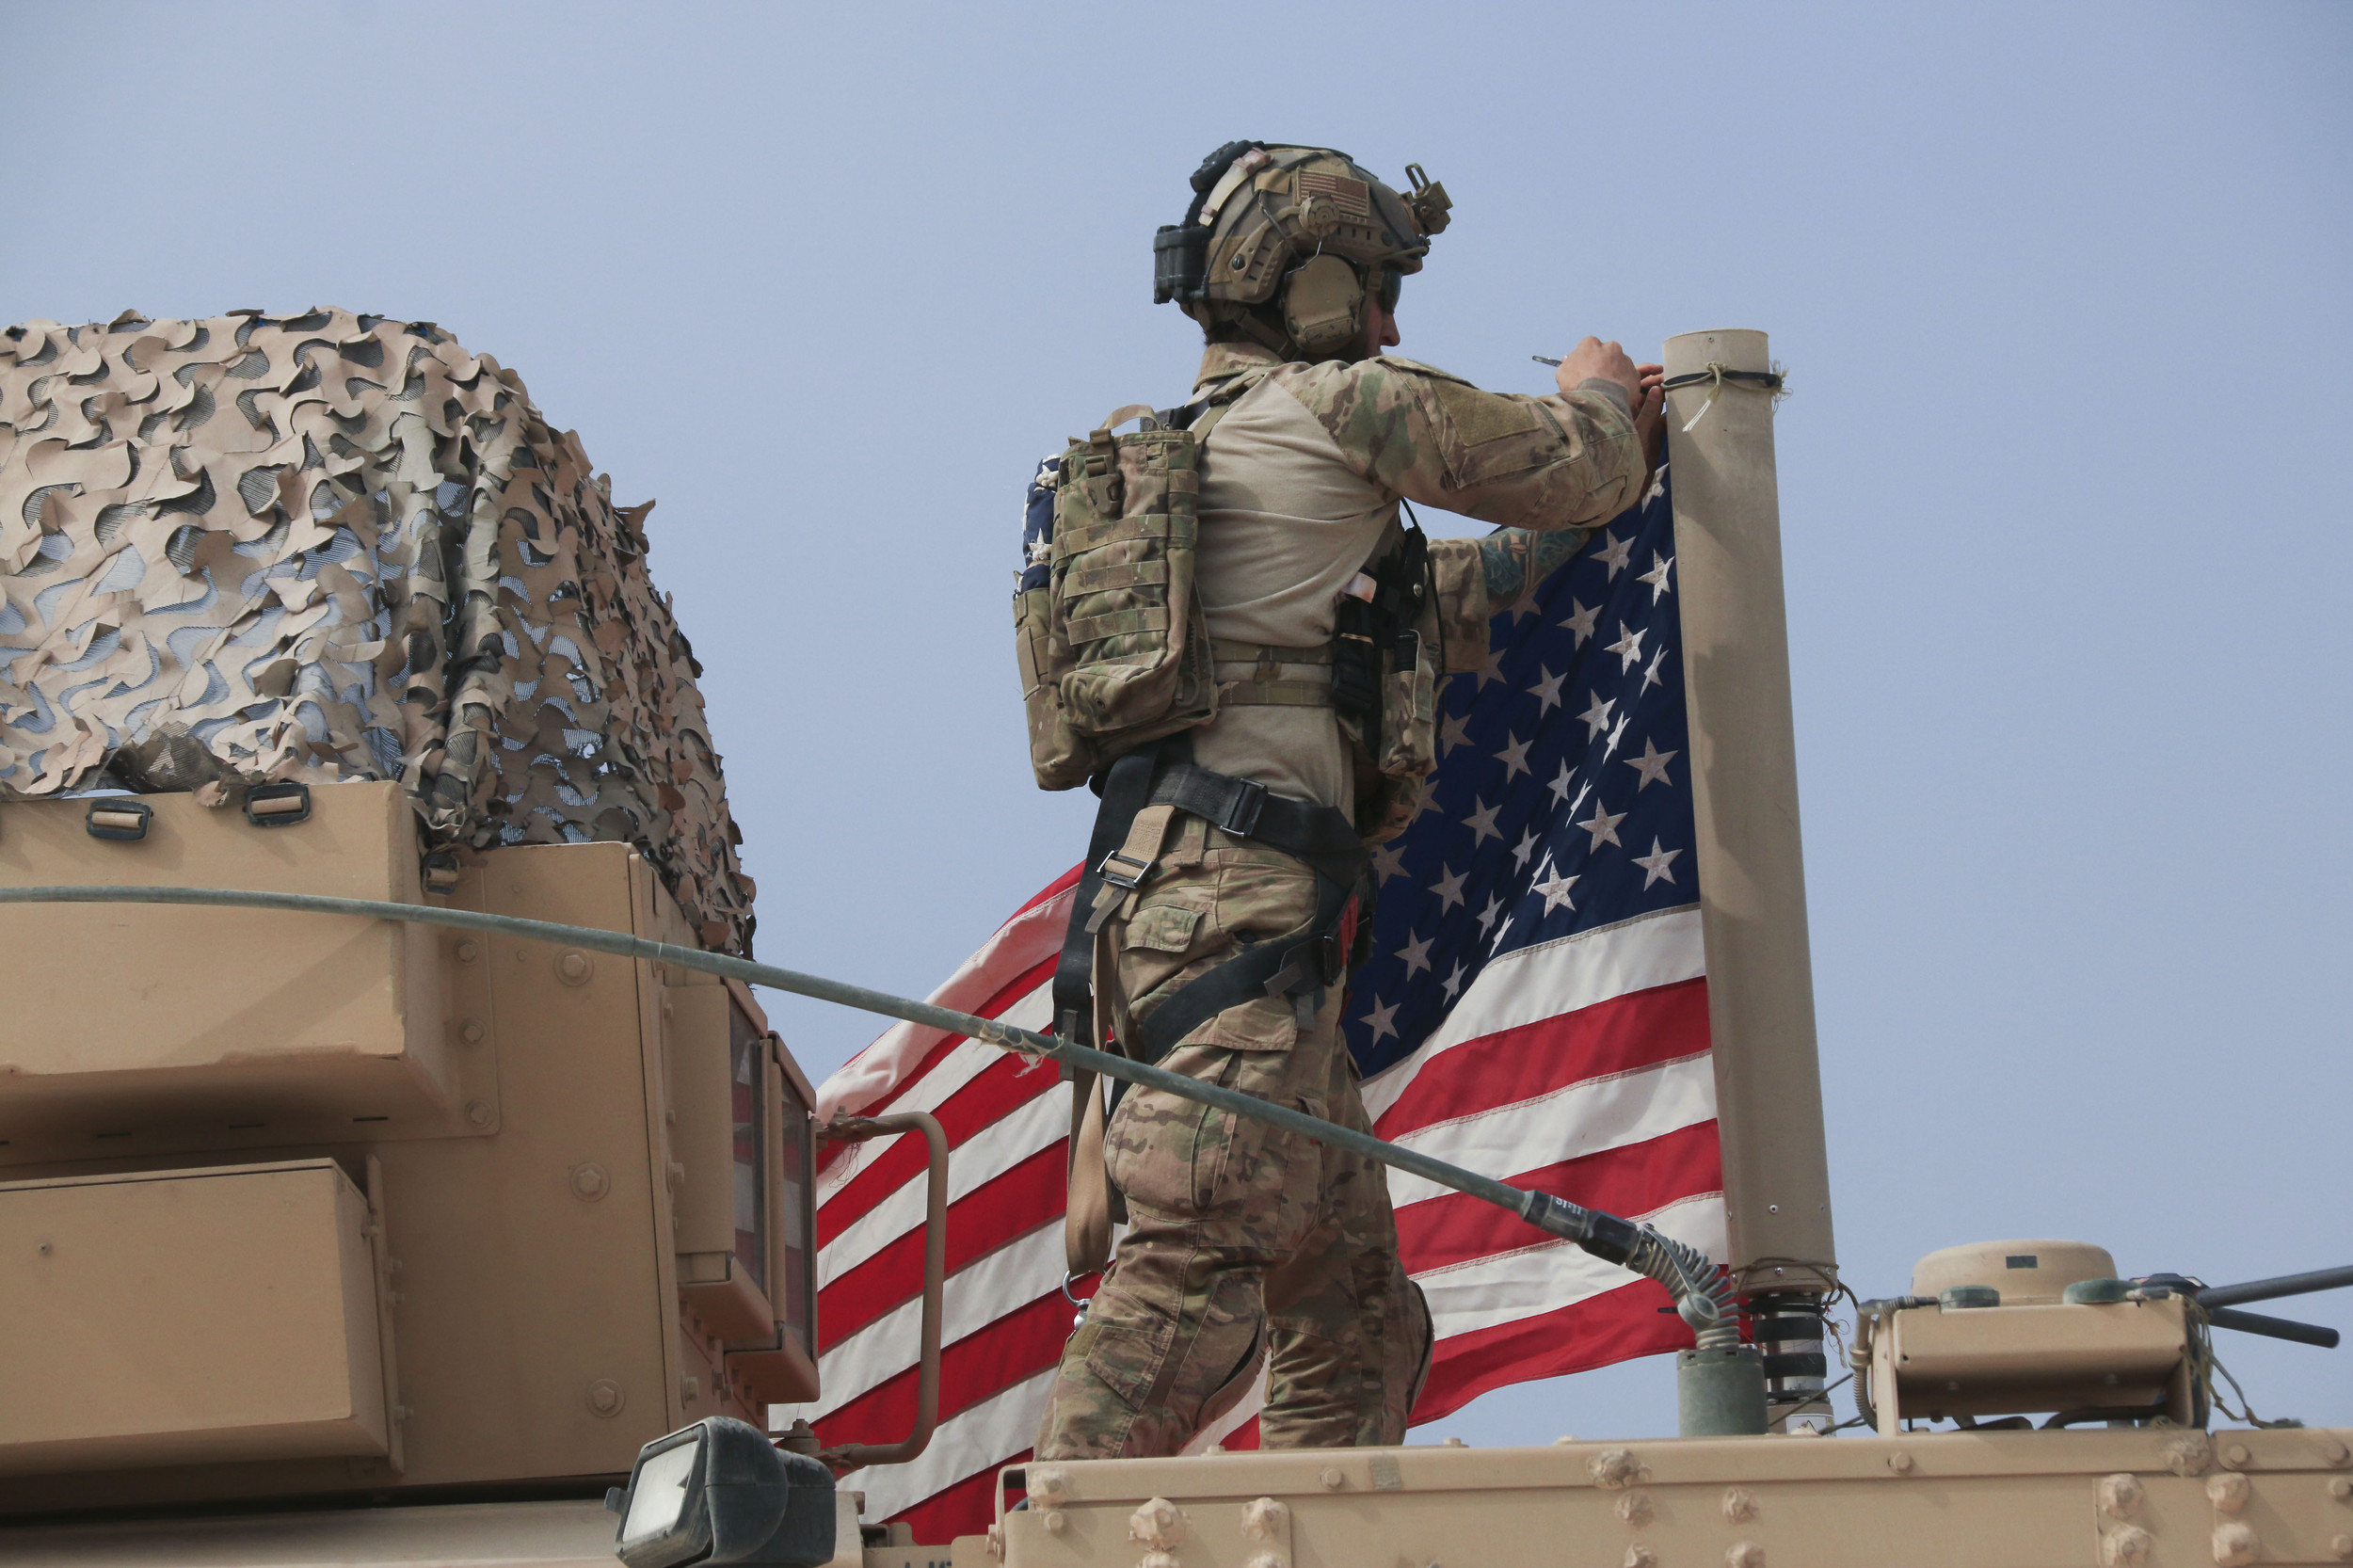 US may now keep some troops in Syria to guard oilfields